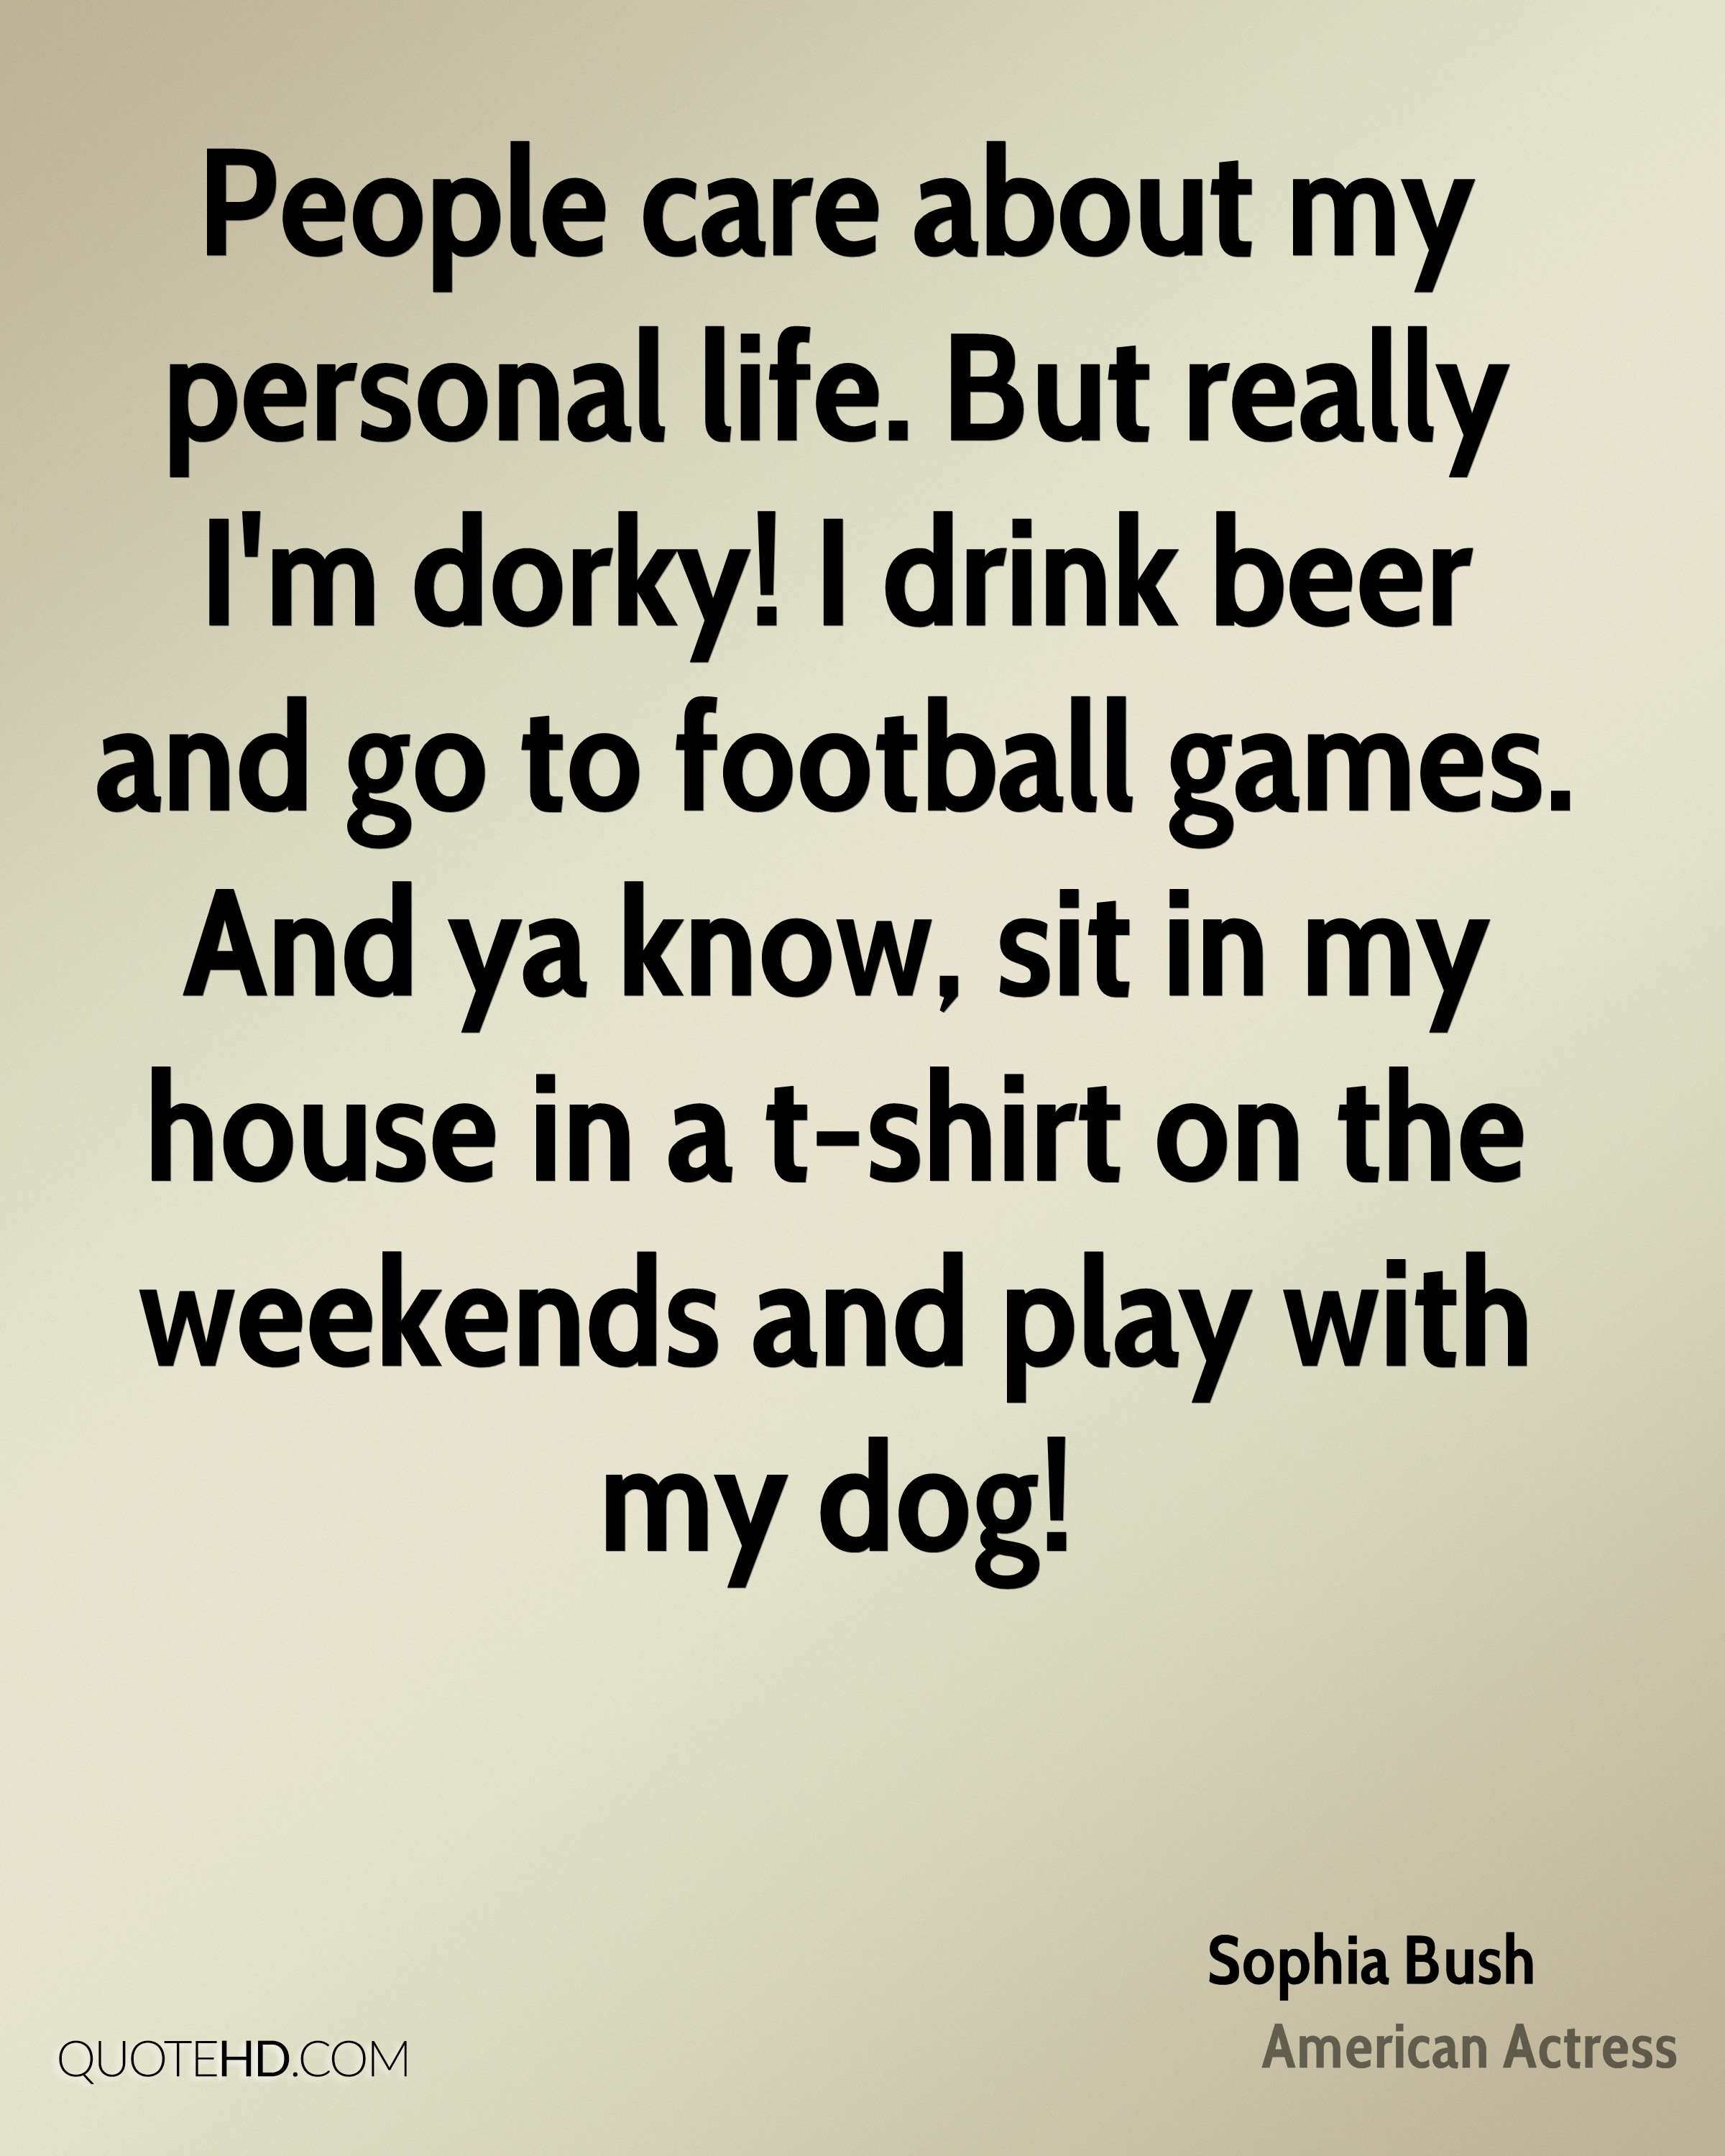 People care about my personal life. But really I'm dorky! I drink beer and go to football games. And ya know, sit in my house in a t-shirt on the weekends and play with my dog!